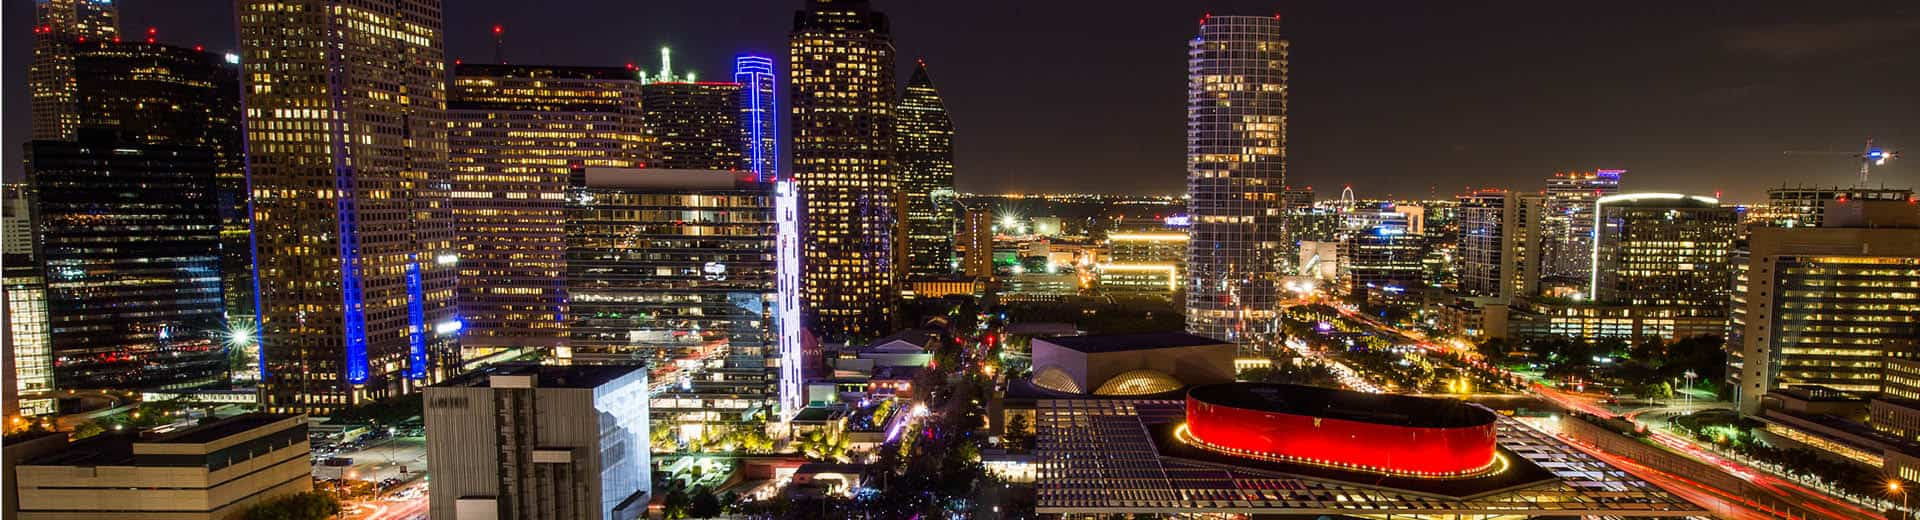 dallas, american south, us south, style city, chic